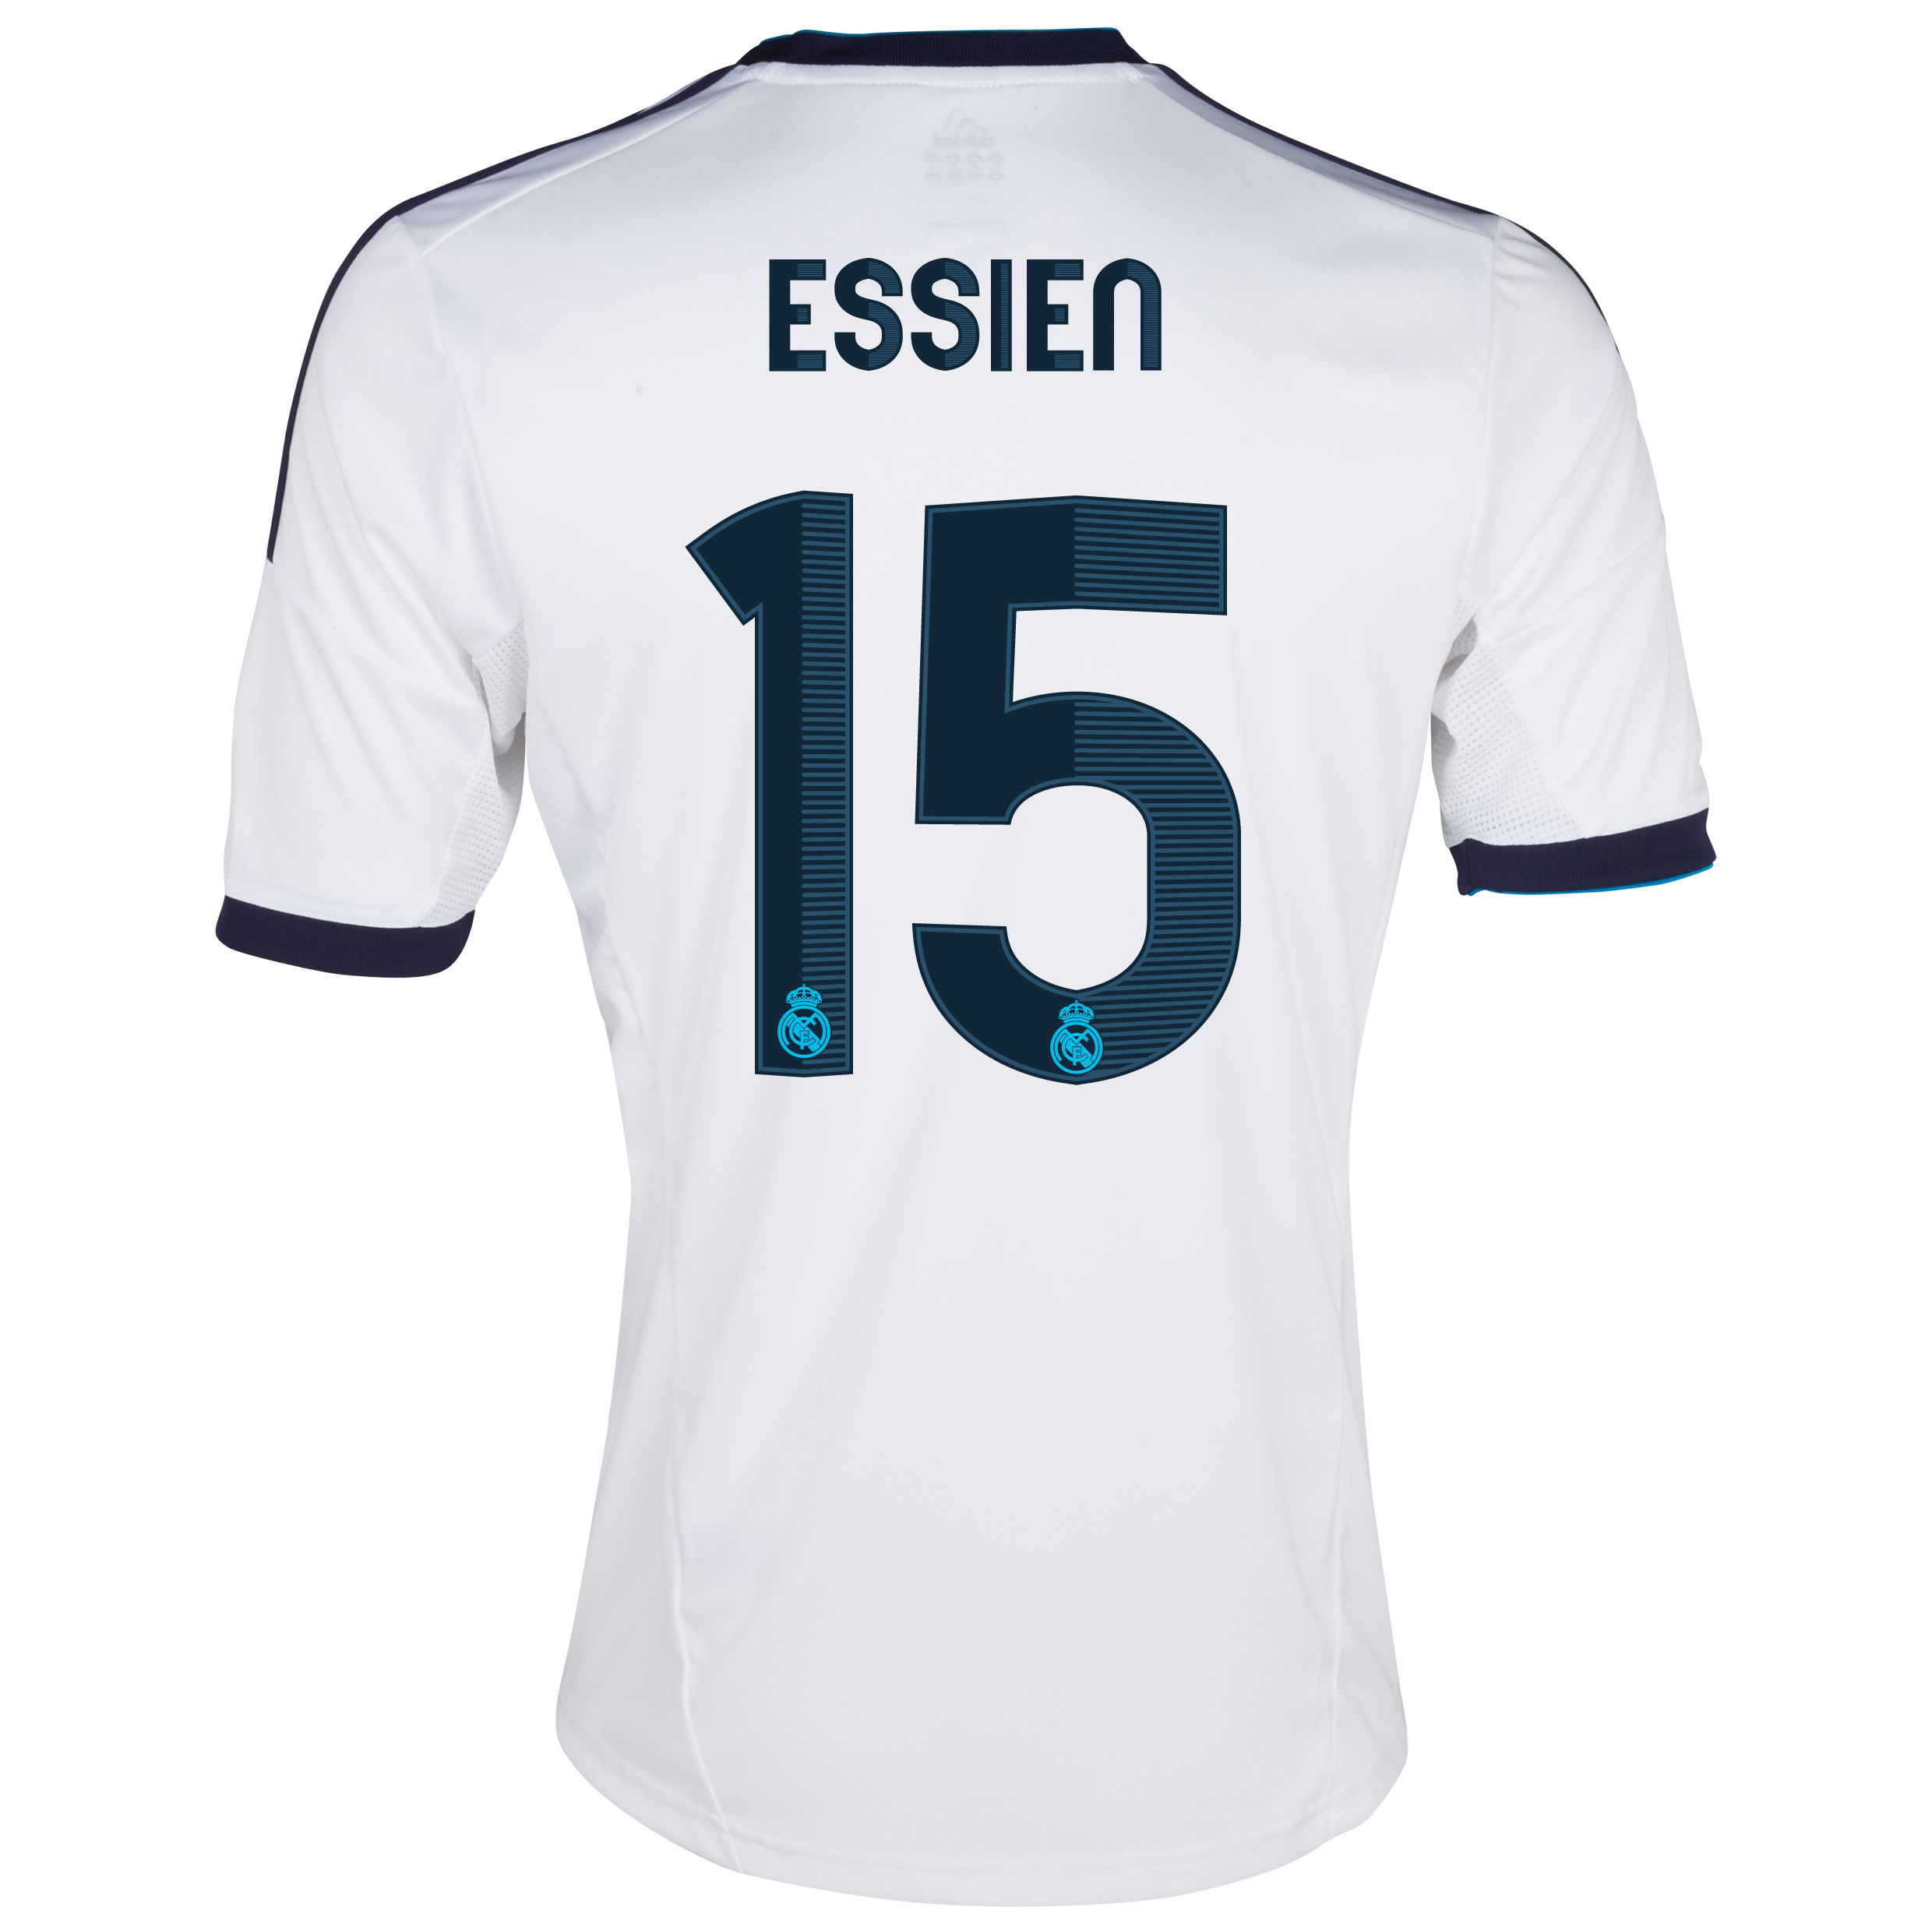 Camiseta 1 Equipacin del Real Madrid 2012/13 - Cadete con Essien N15